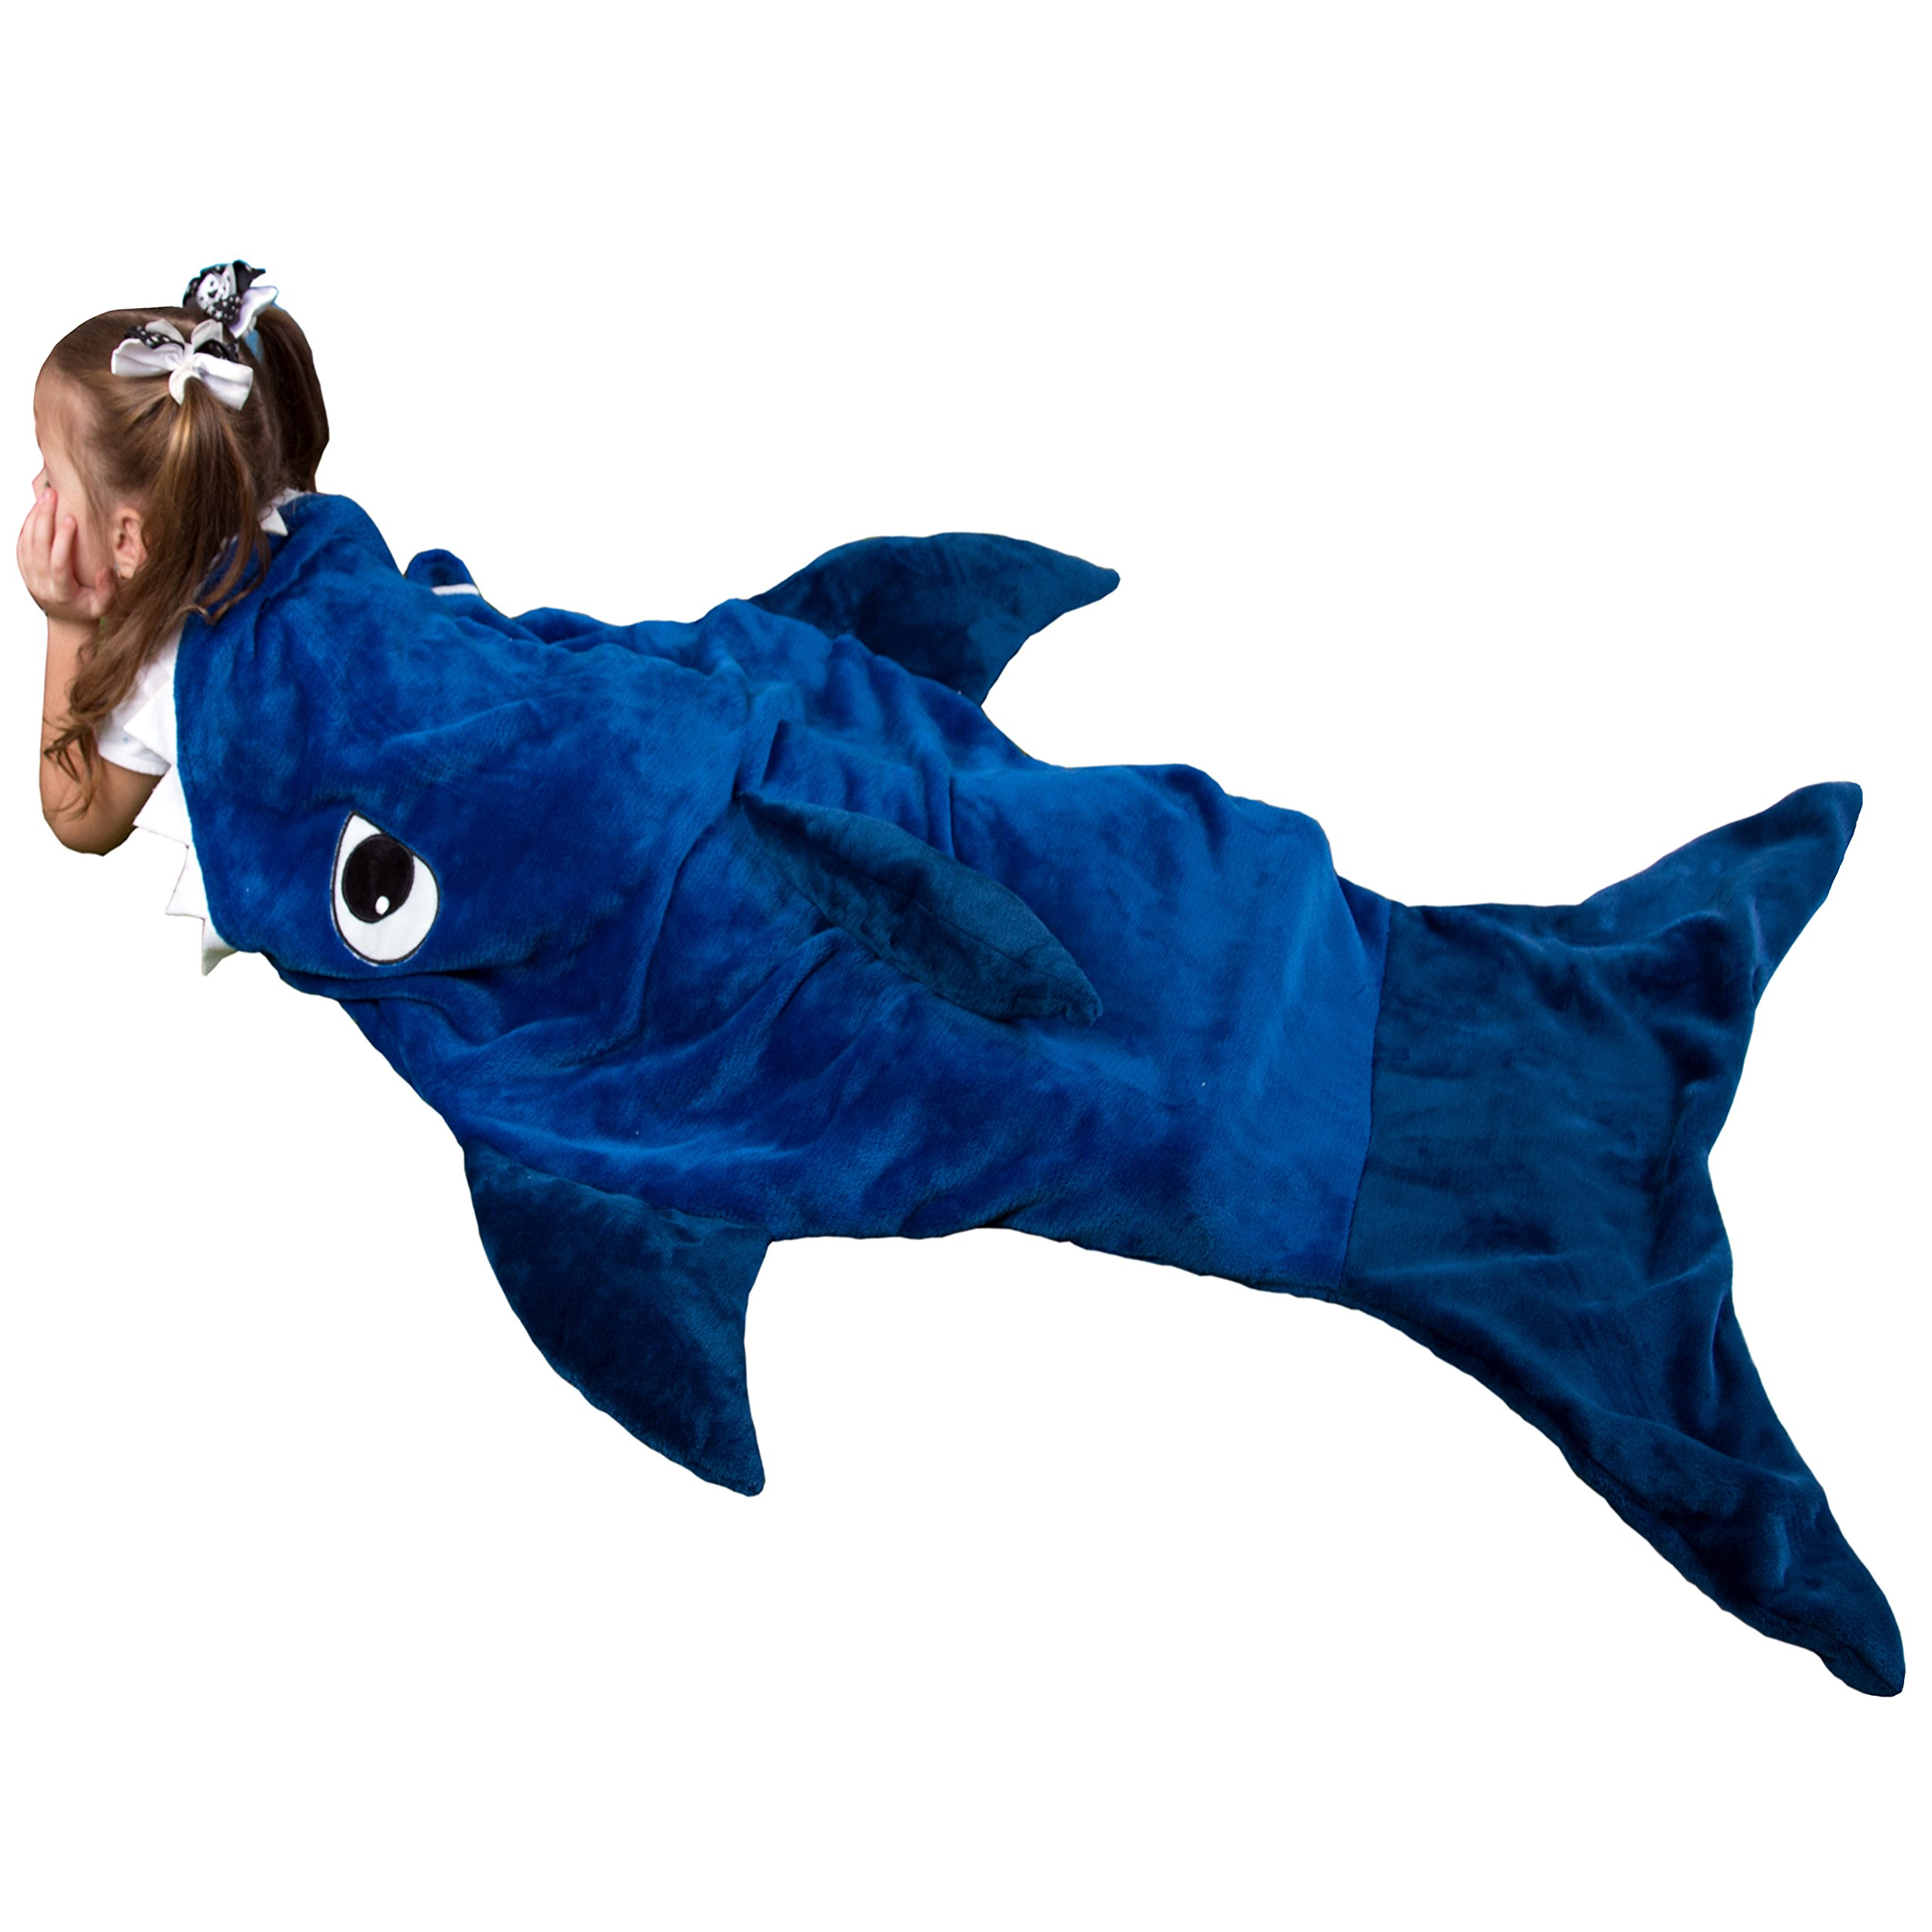 KnopMax Ultra Soft Shark Blanket for Kids– Premium Quality By Features 3D Fins & Teeth – Comfortable & Warm Shark Blanket – Deep Blue Color & Plush Fabric